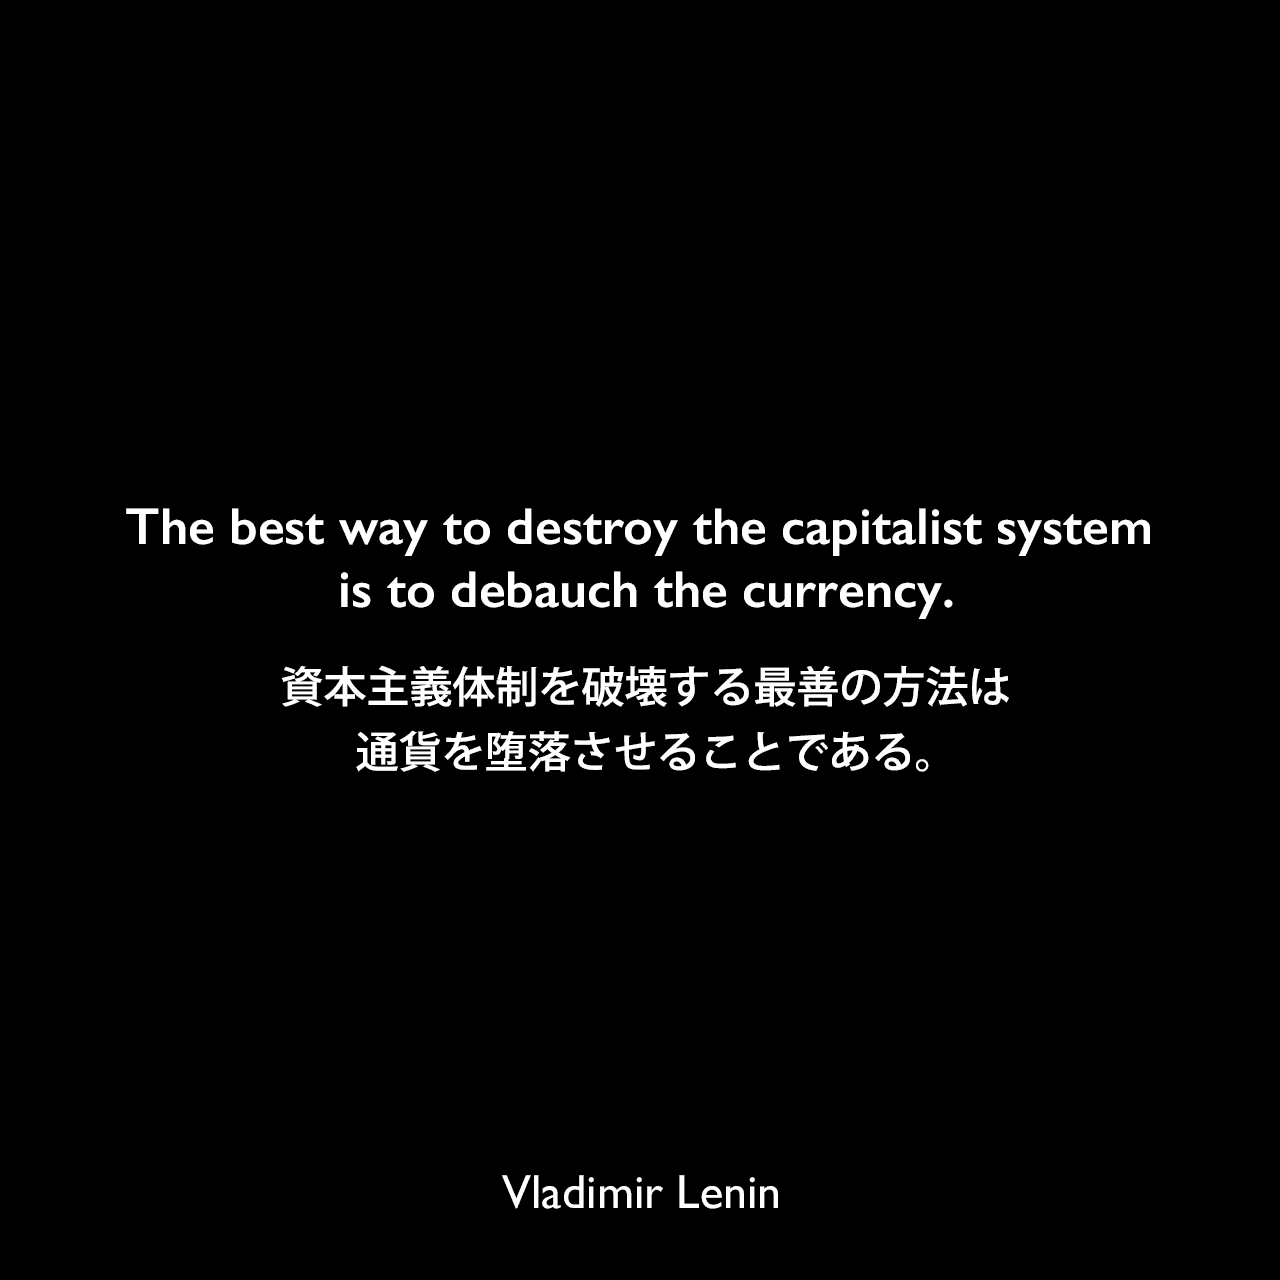 The best way to destroy the capitalist system is to debauch the currency.資本主義体制を破壊する最善の方法は通貨を堕落させることである。- ケインズの本「平和の経済的帰結」よりVladimir Lenin